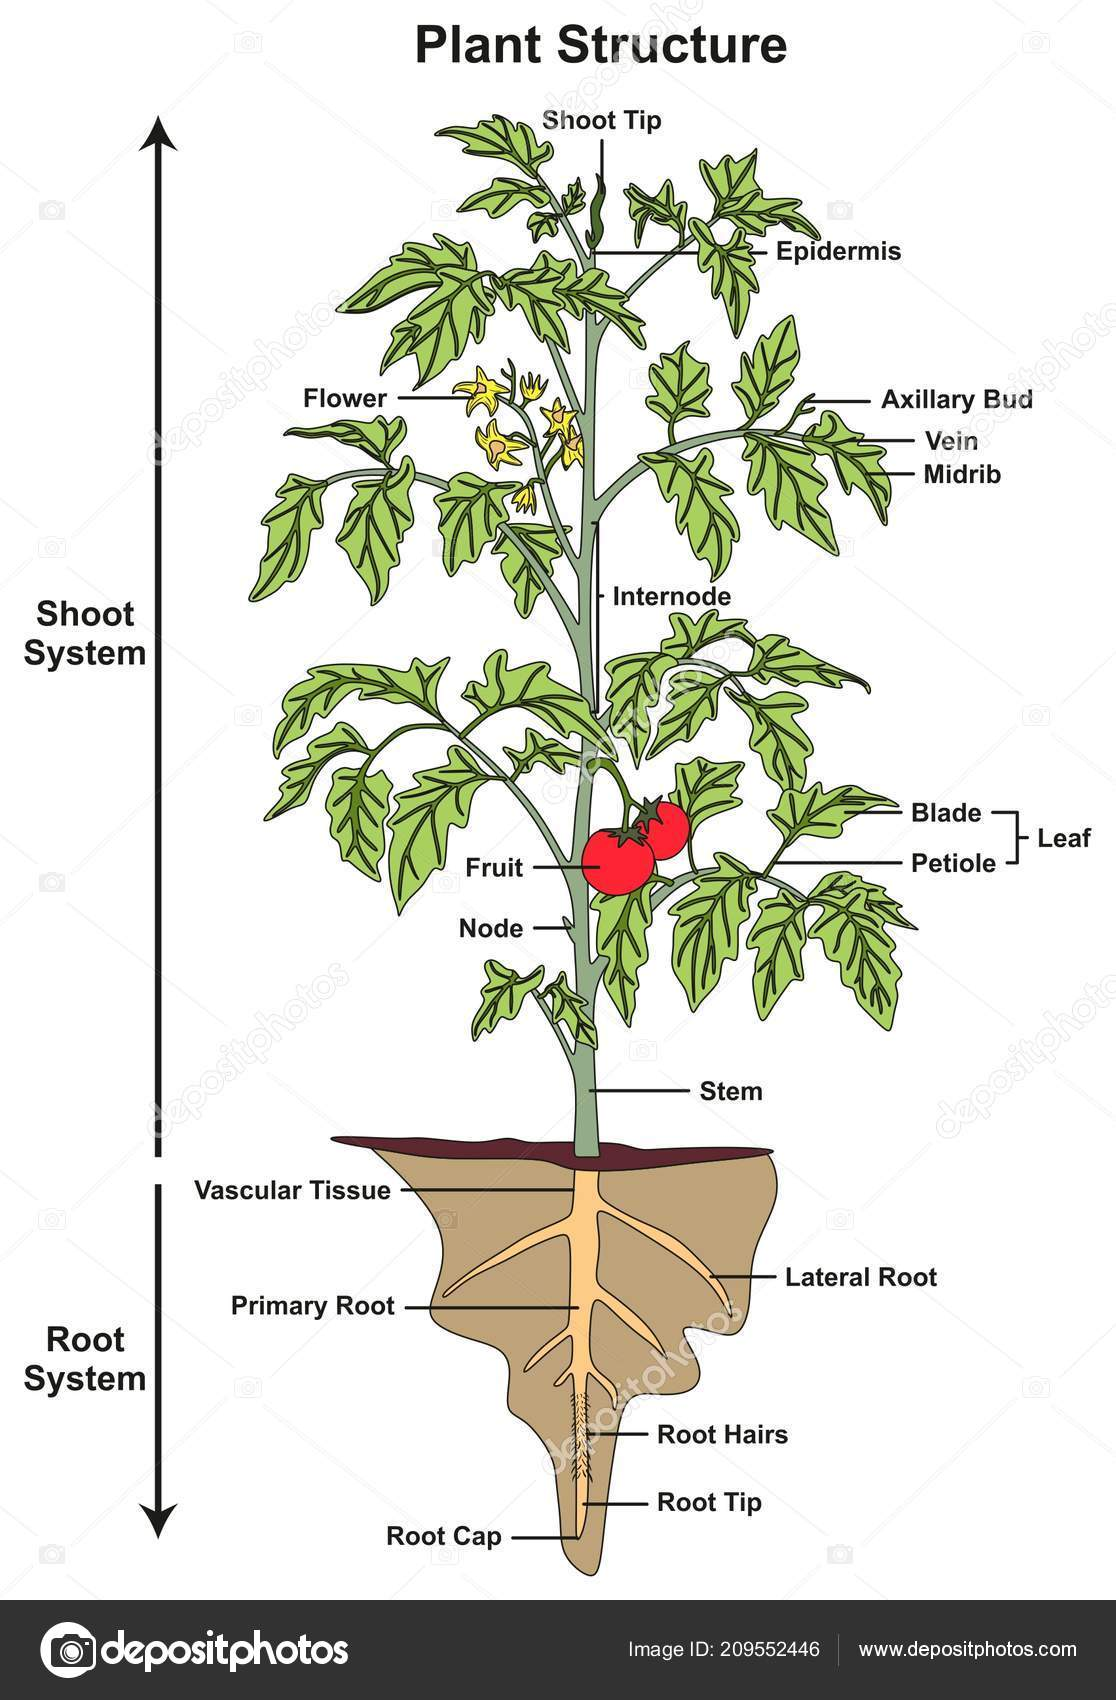 Plant structure infographic diagram including all parts shoot root plant structure infographic diagram including all parts of shoot and root systems showing buds flower fruit stem leaf node root hairs tip cap for biology ccuart Images